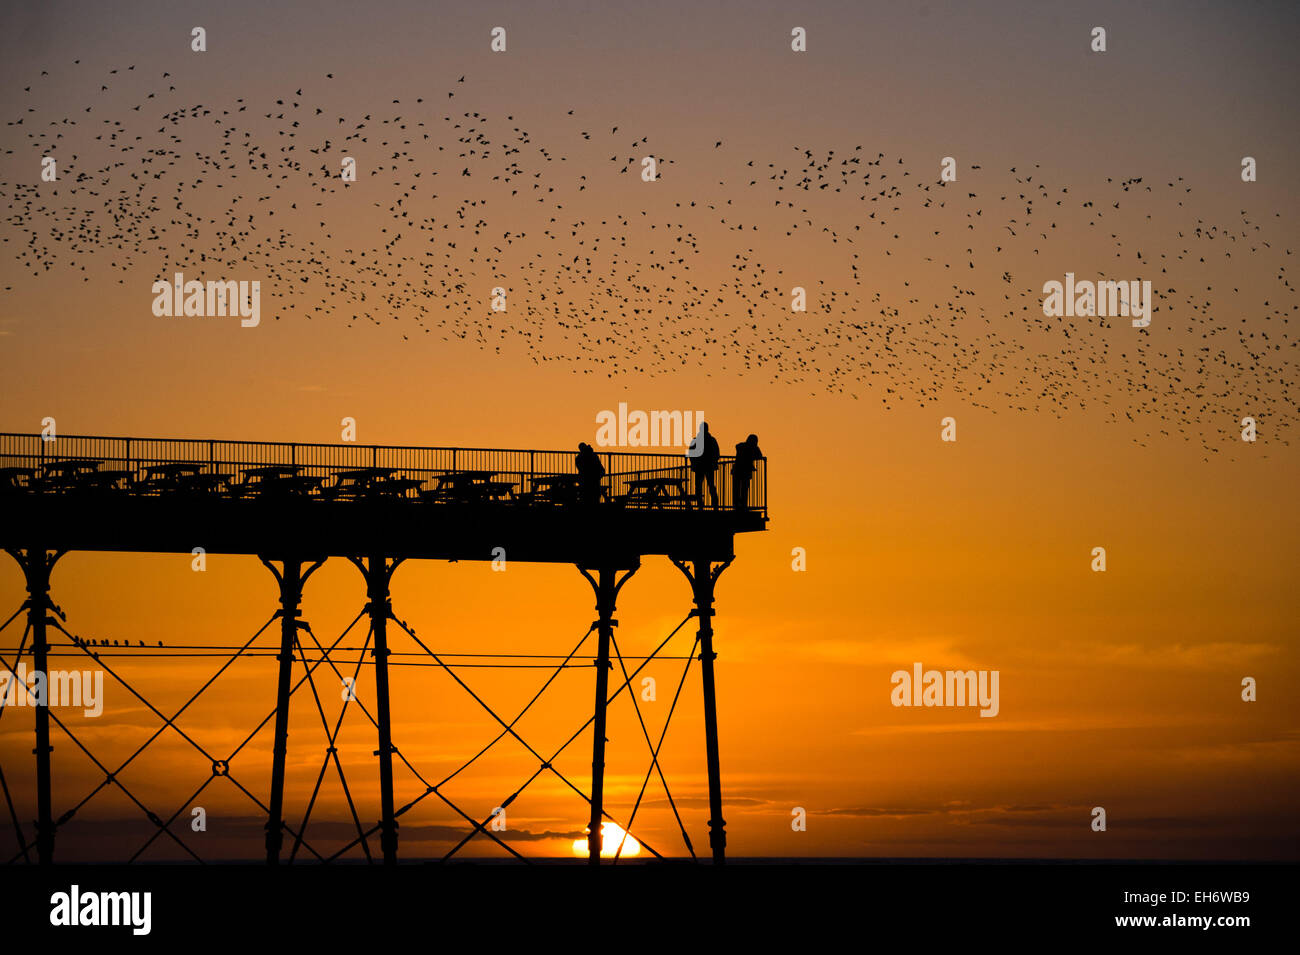 Aberystwyth, Wales, UK. 8th March, 2015. UK Weather:  At the end of an afternoon of clear blue skies and warm spring sunshine, with the sun setting spectacularly over Cardigan Bay,   'murmurations' of thousands of starlings fly in at sunset  to settle for the night on the cast iron legs of the Victorian seaside pier at Aberystwyth on the west wales coast UK.   The nightly roost in Aberystwyth is one of only three urban roosts in the UK and draws a regular crowd of onlookers and photographers every evening. Credit:  keith morris/Alamy Live News Stock Photo